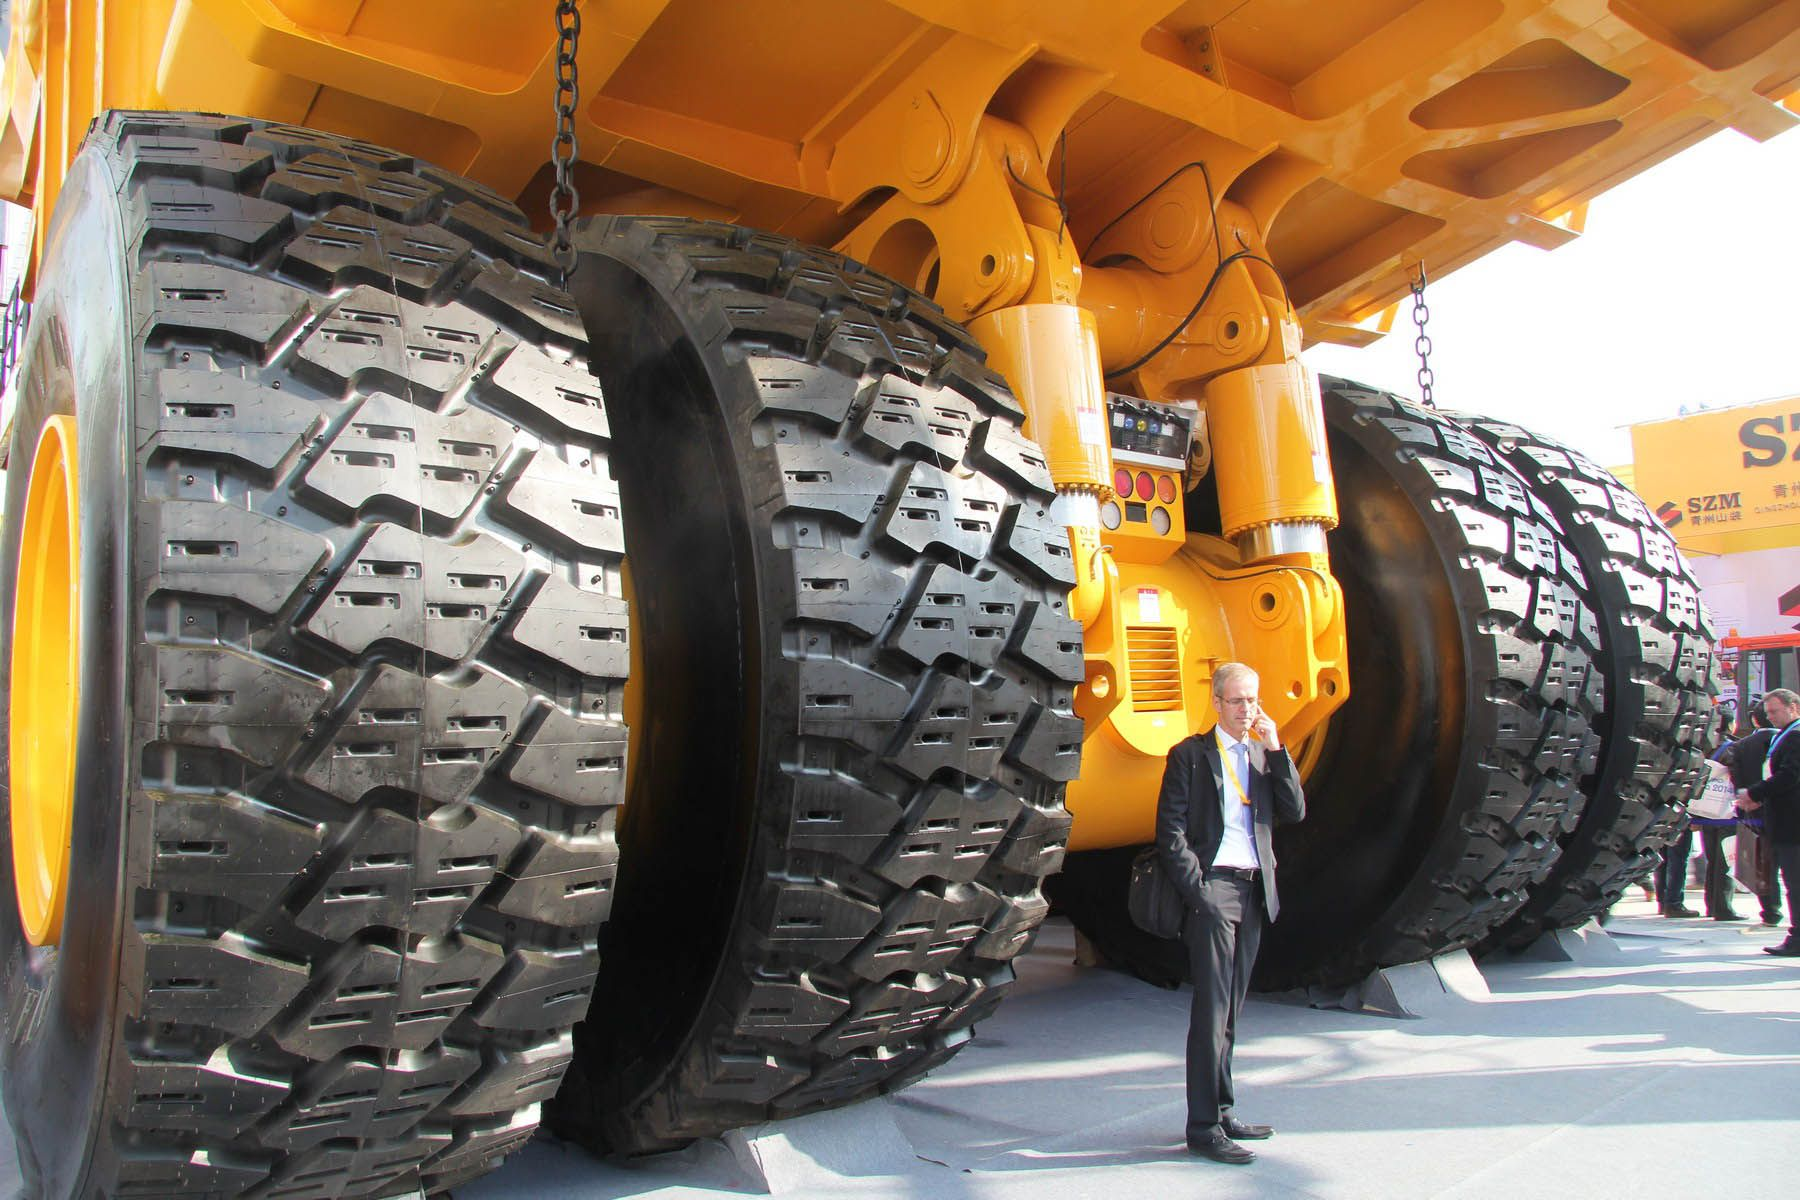 Look At The Monster Overview Those Enormous Mining Trucks Sinotruk Parts Howo Parts Shacman Parts Genuine Parts Trucks Dump Trucks Heavy Equipment